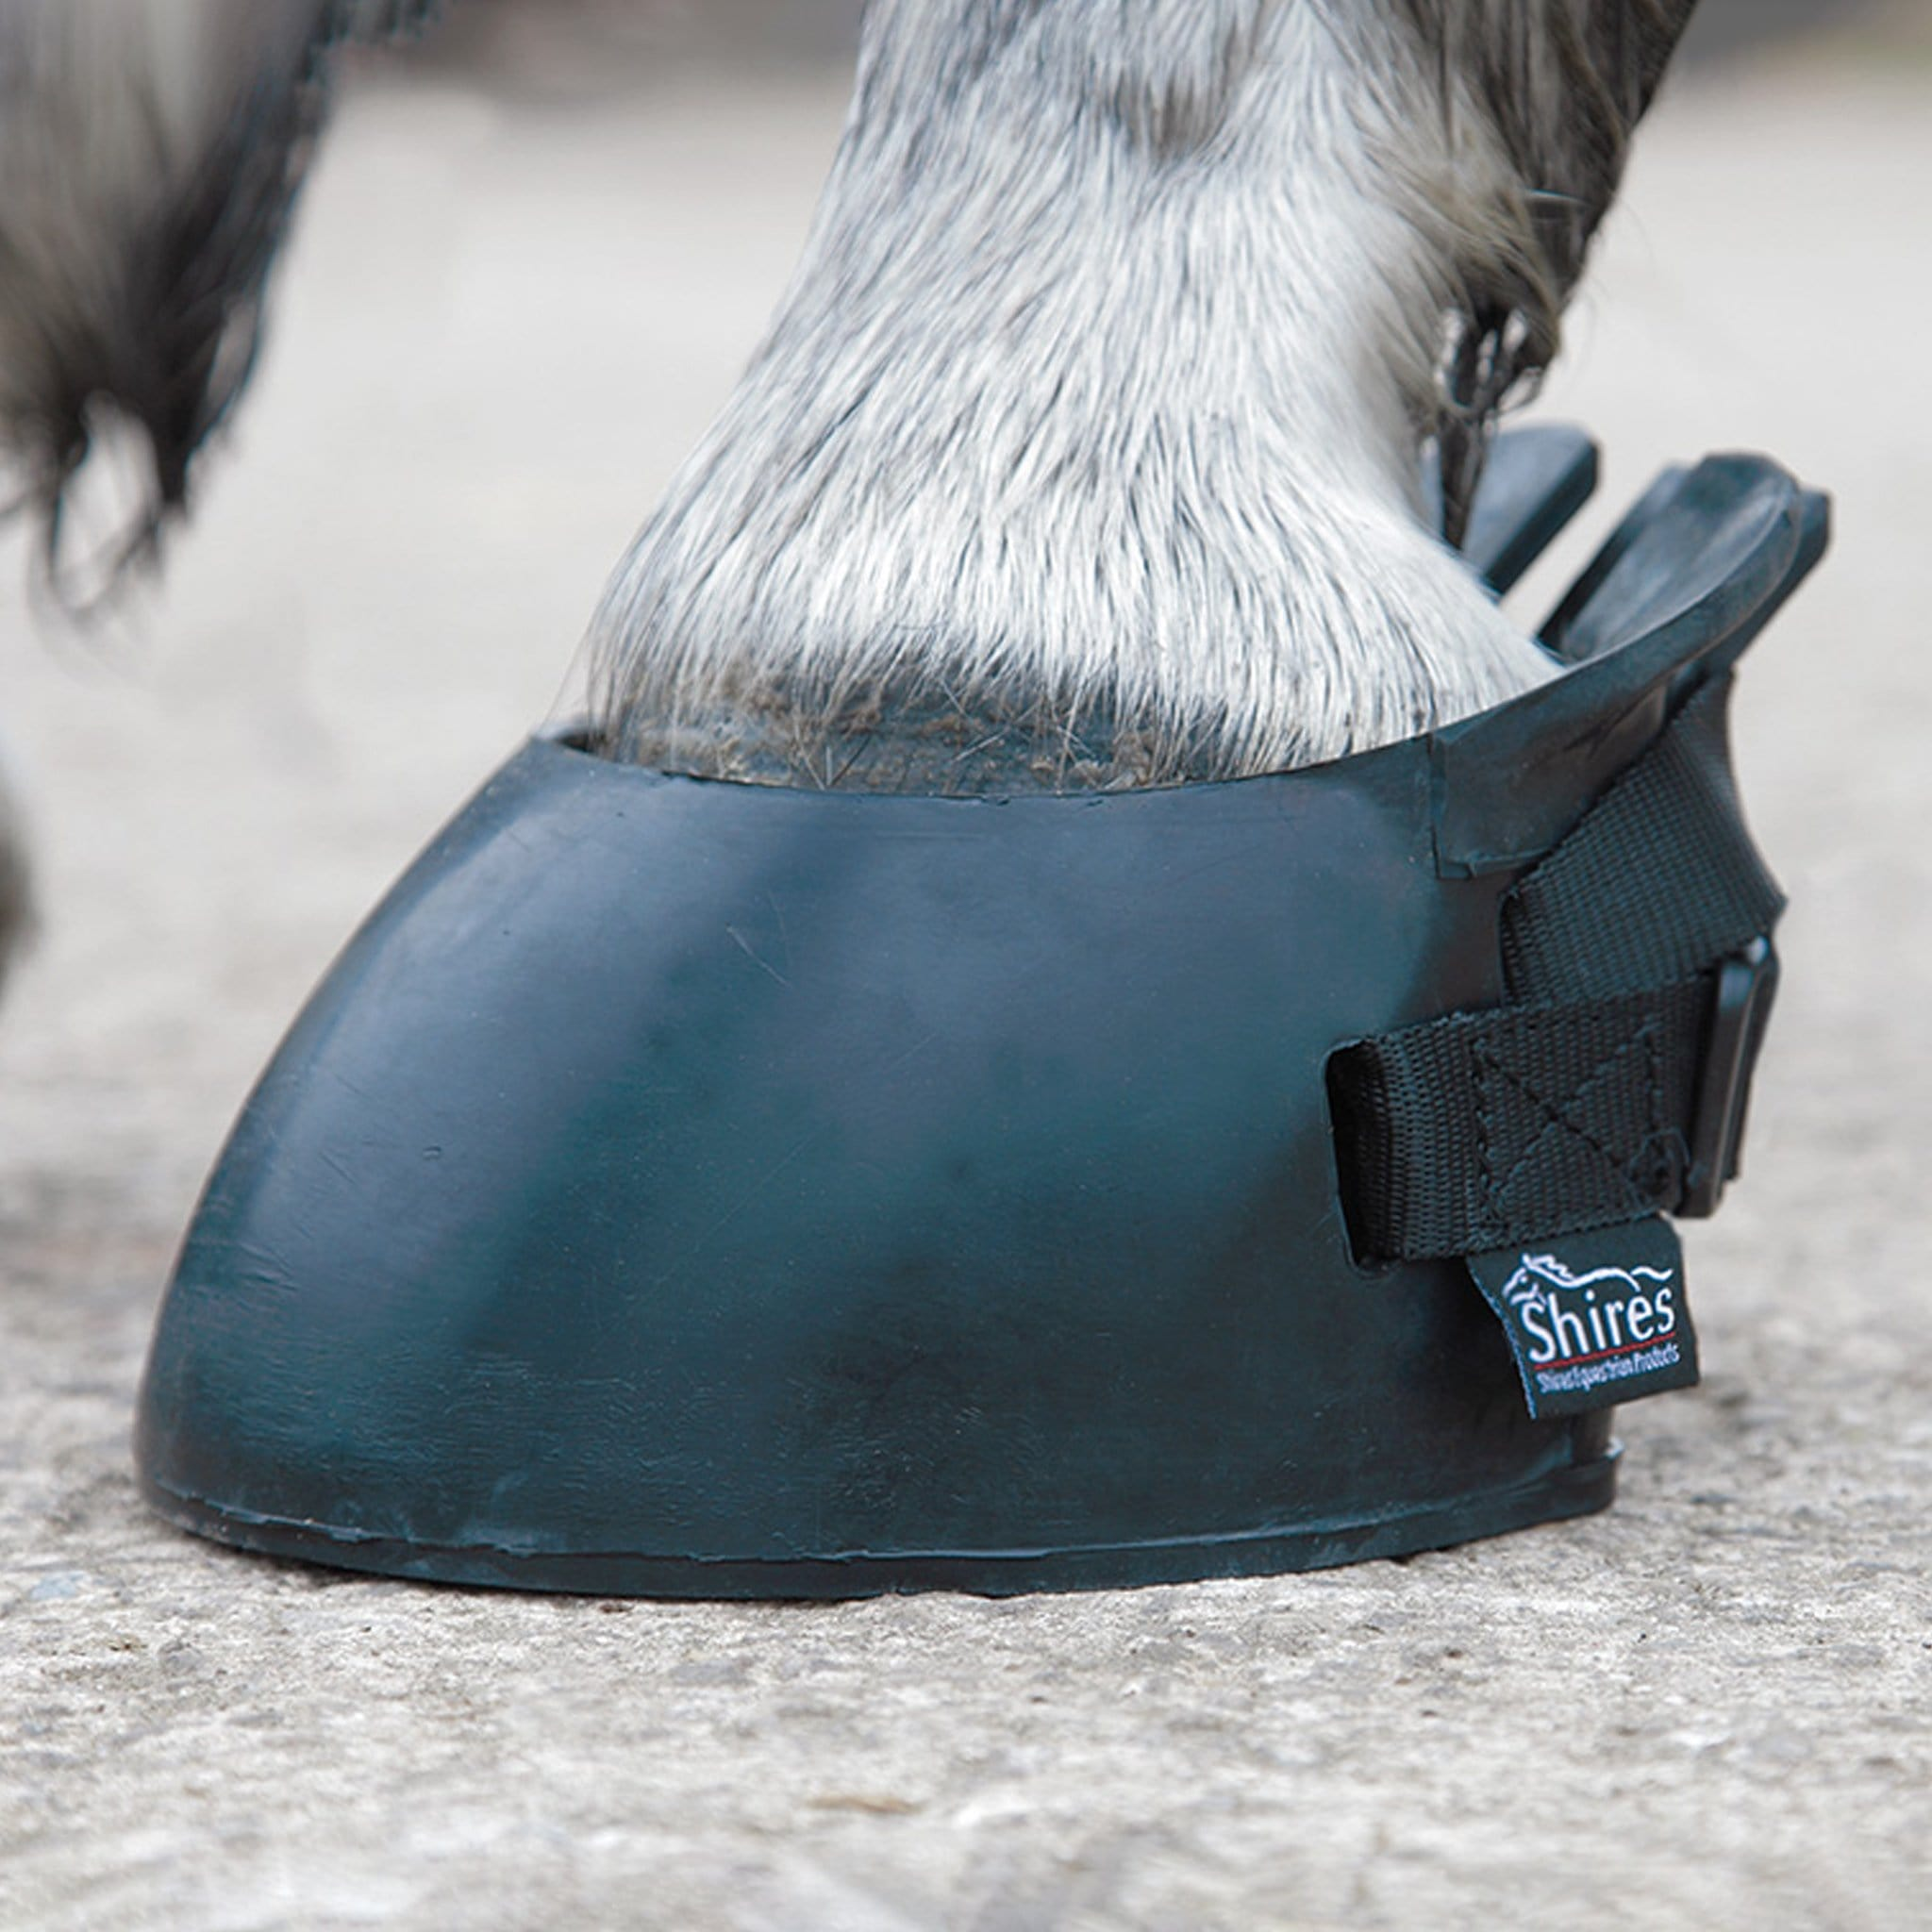 Shires Temporary Shoe Boot 1847 Black